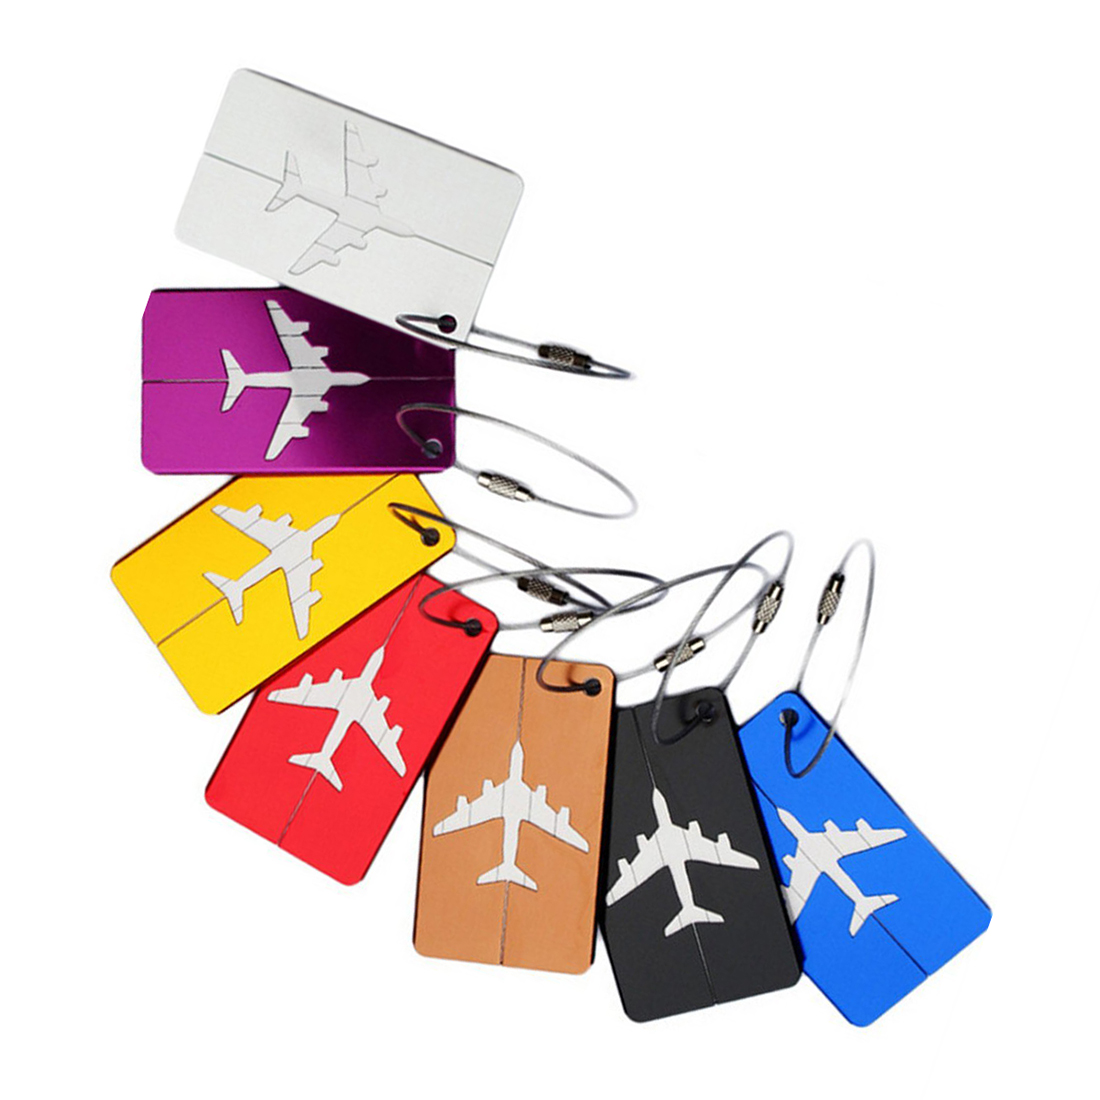 SNNY Luggage Tags suitcase Tags 7 in 1 aluminum airplane pattern